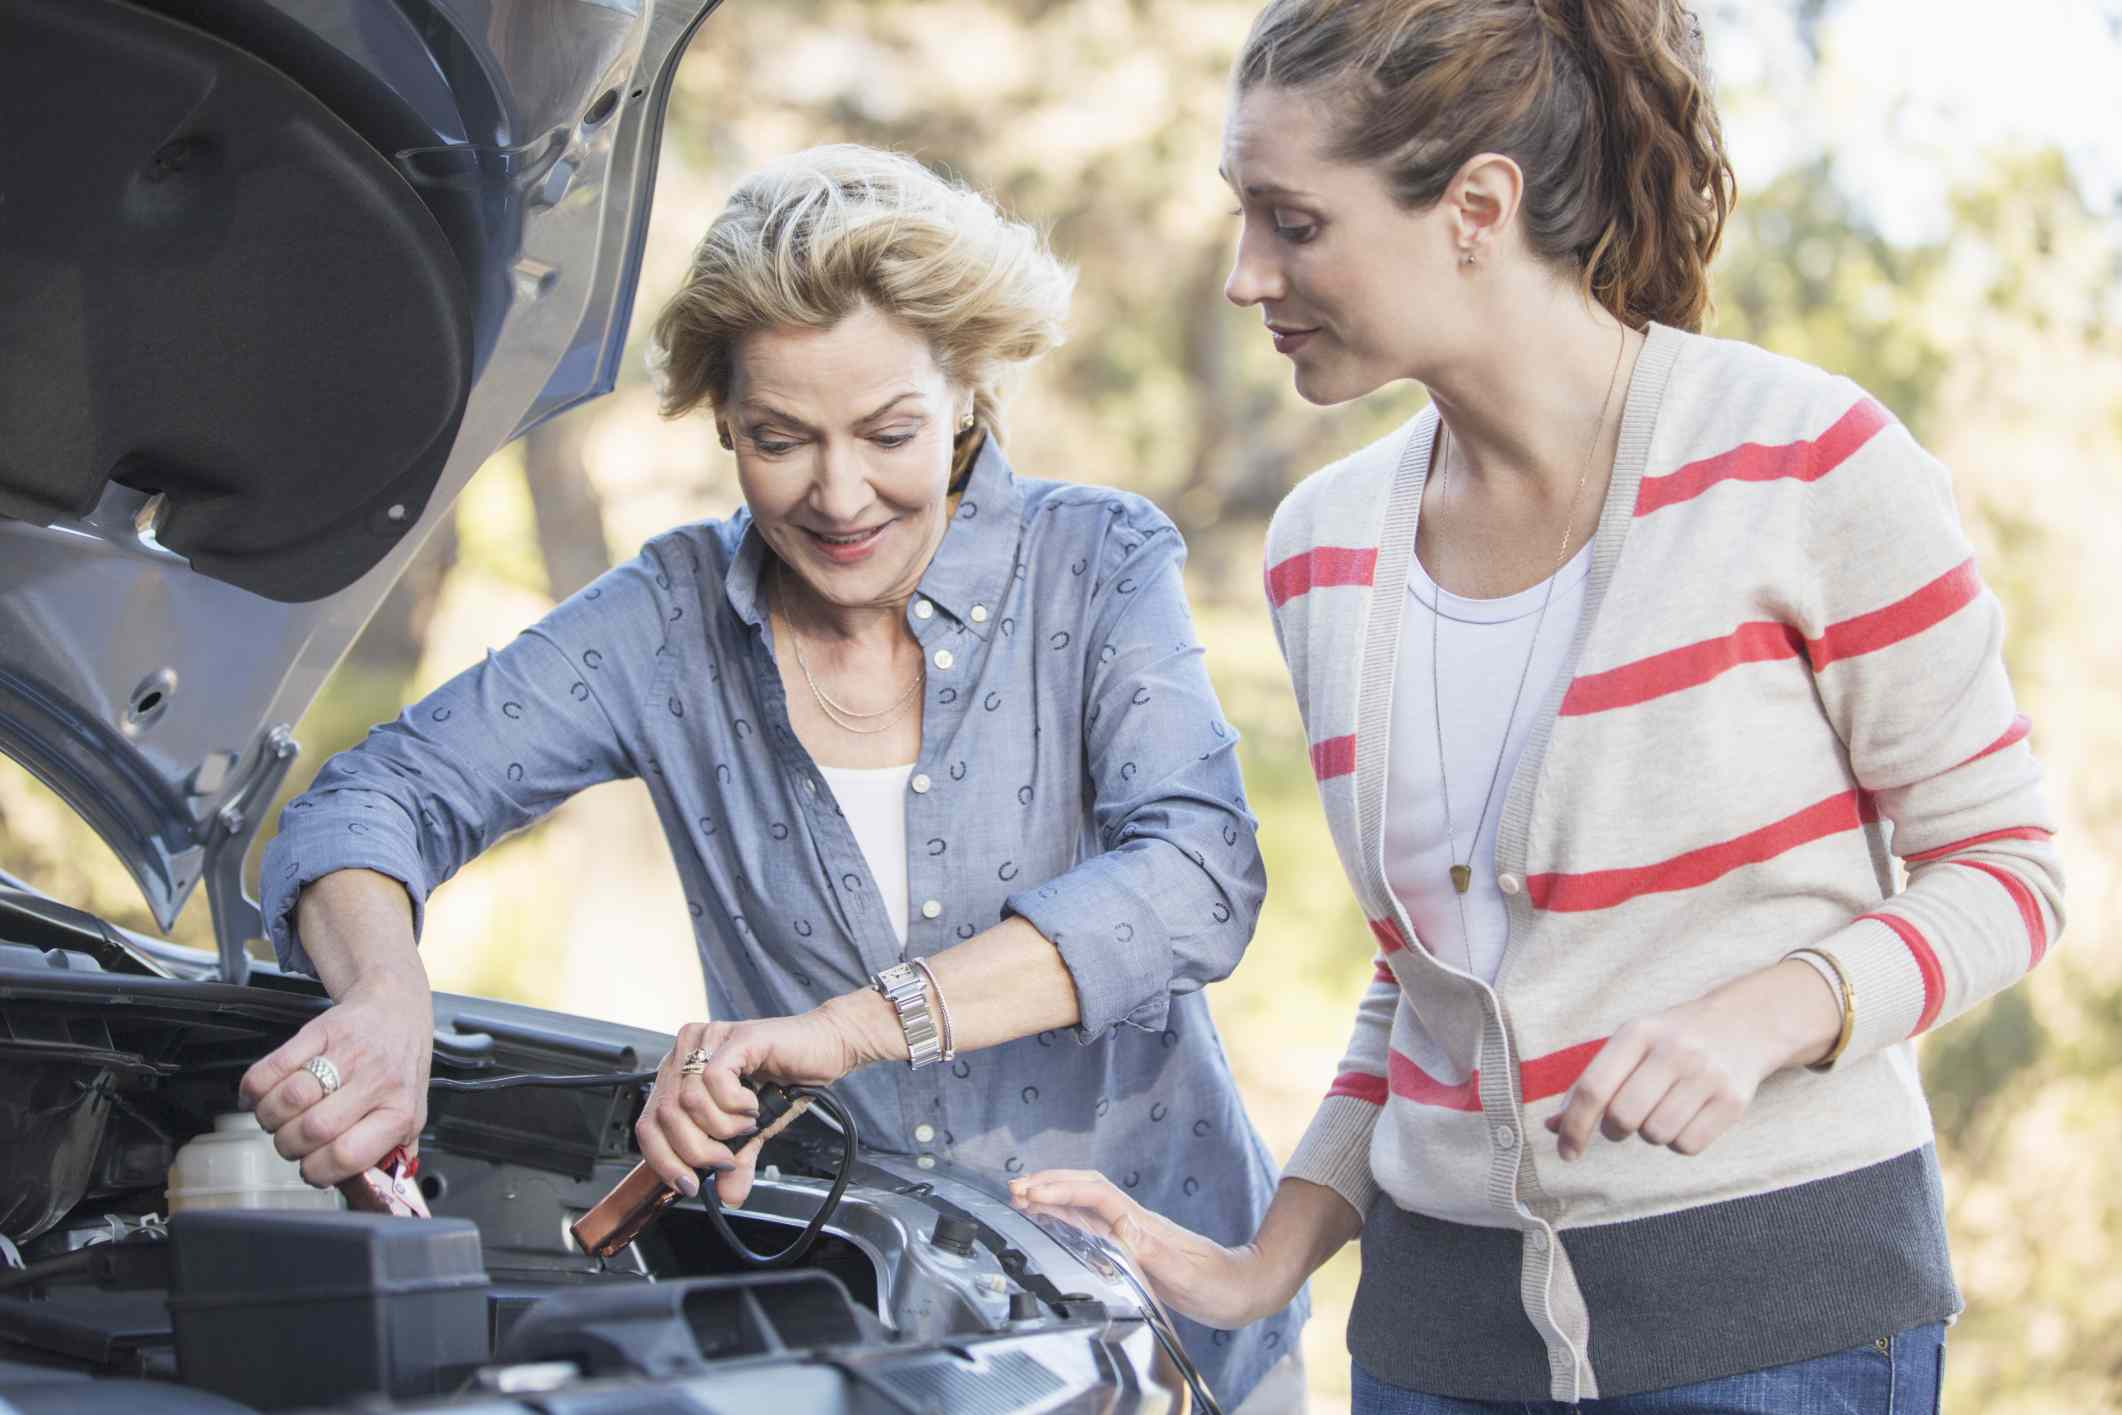 Two people charging a car battery